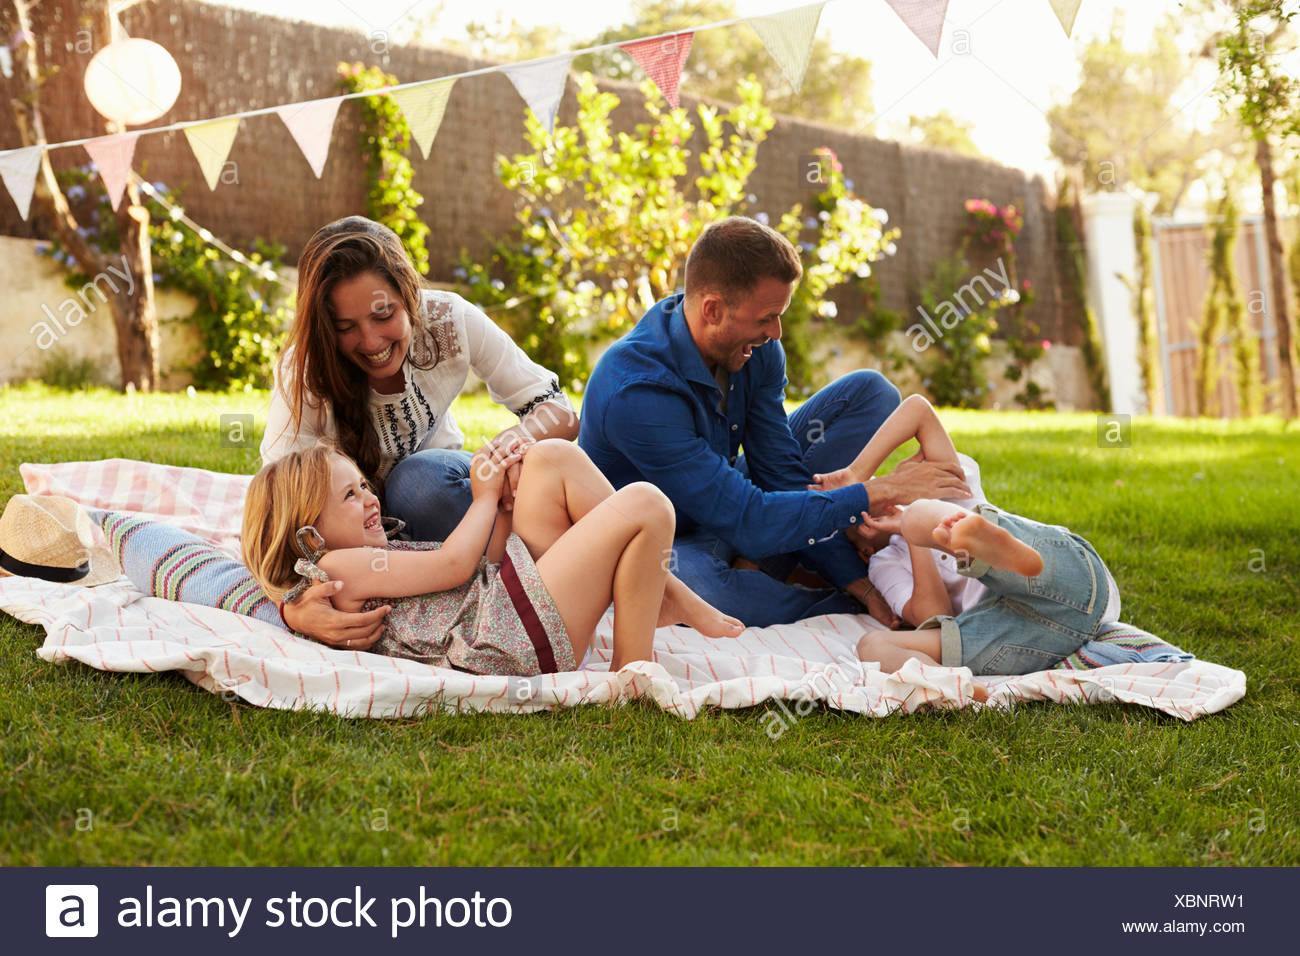 Parents Playing Game With Children On Blanket In Garden - Stock Image